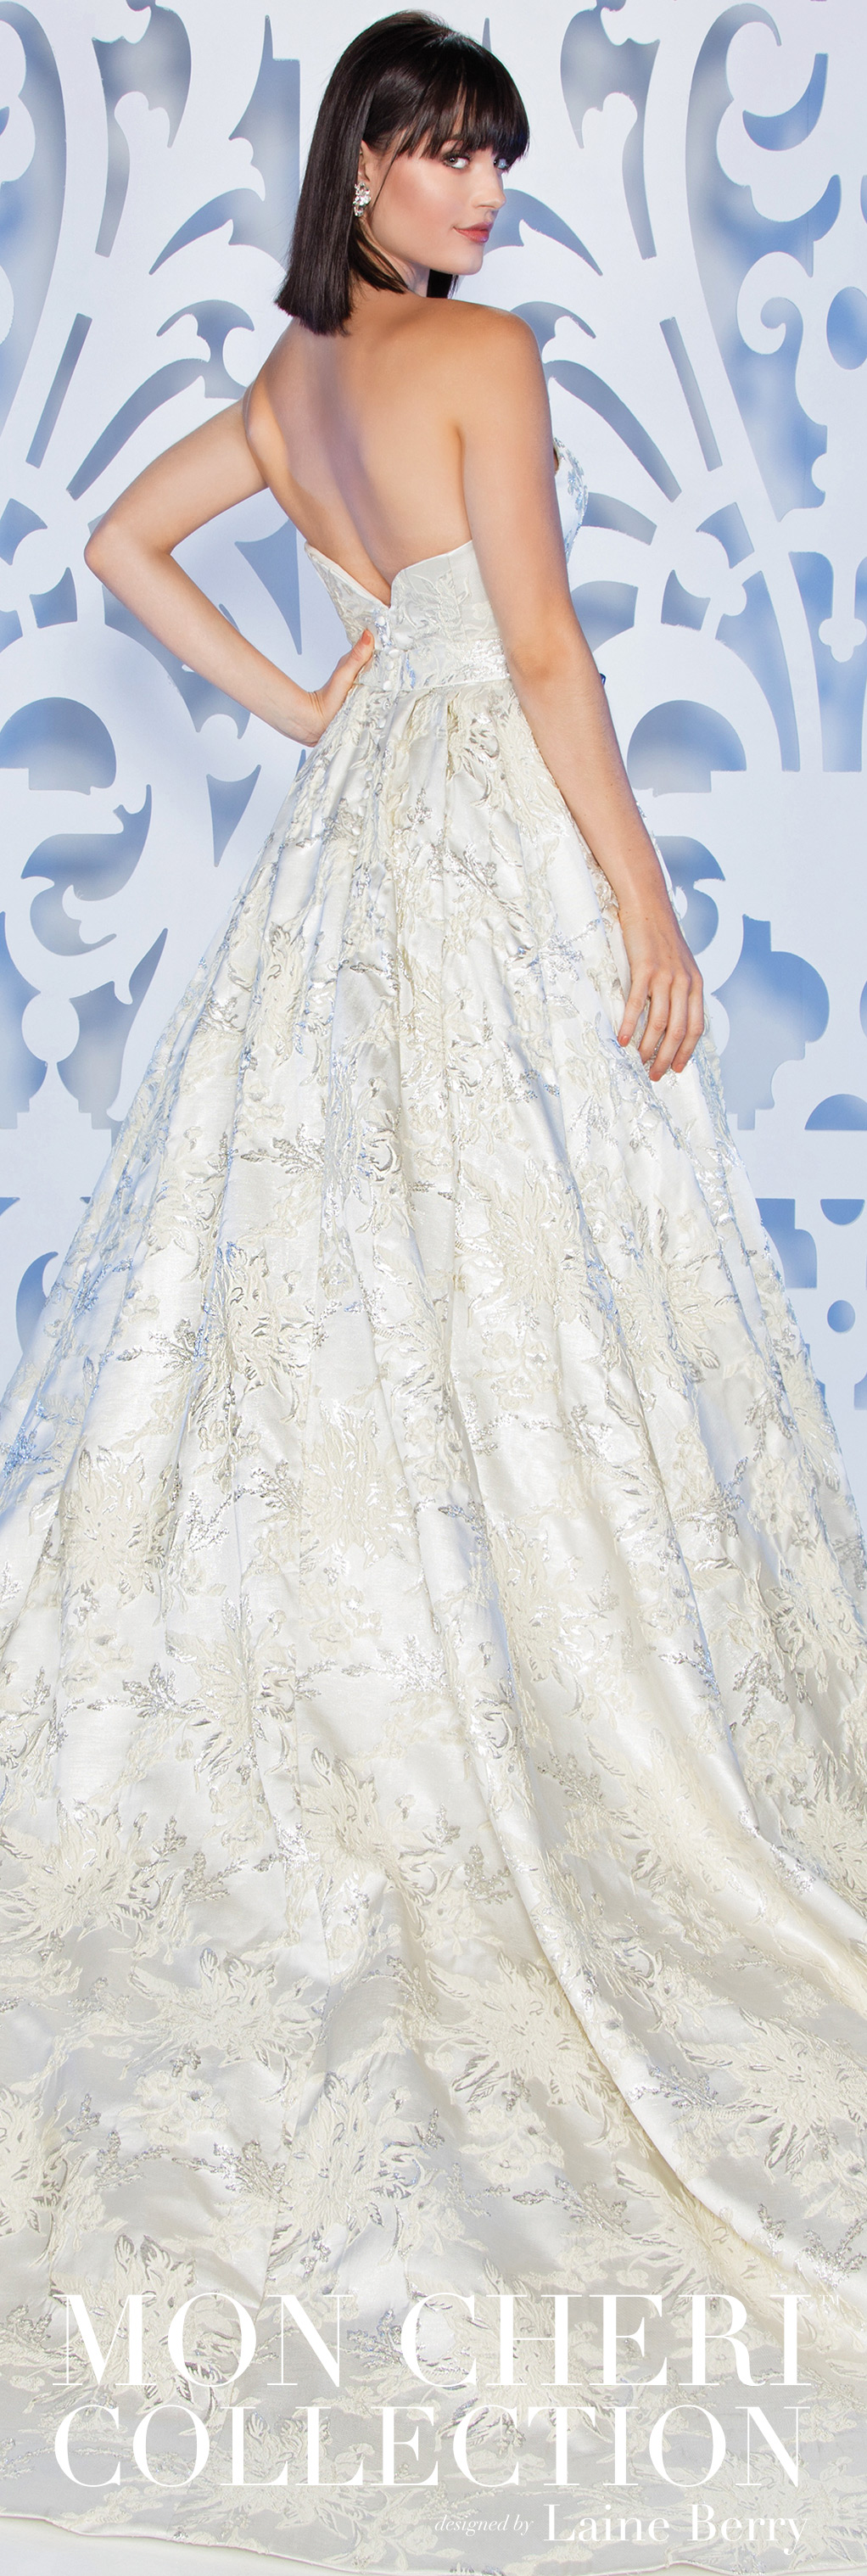 Mclbb calypso ball gowns wedding dress and weddings